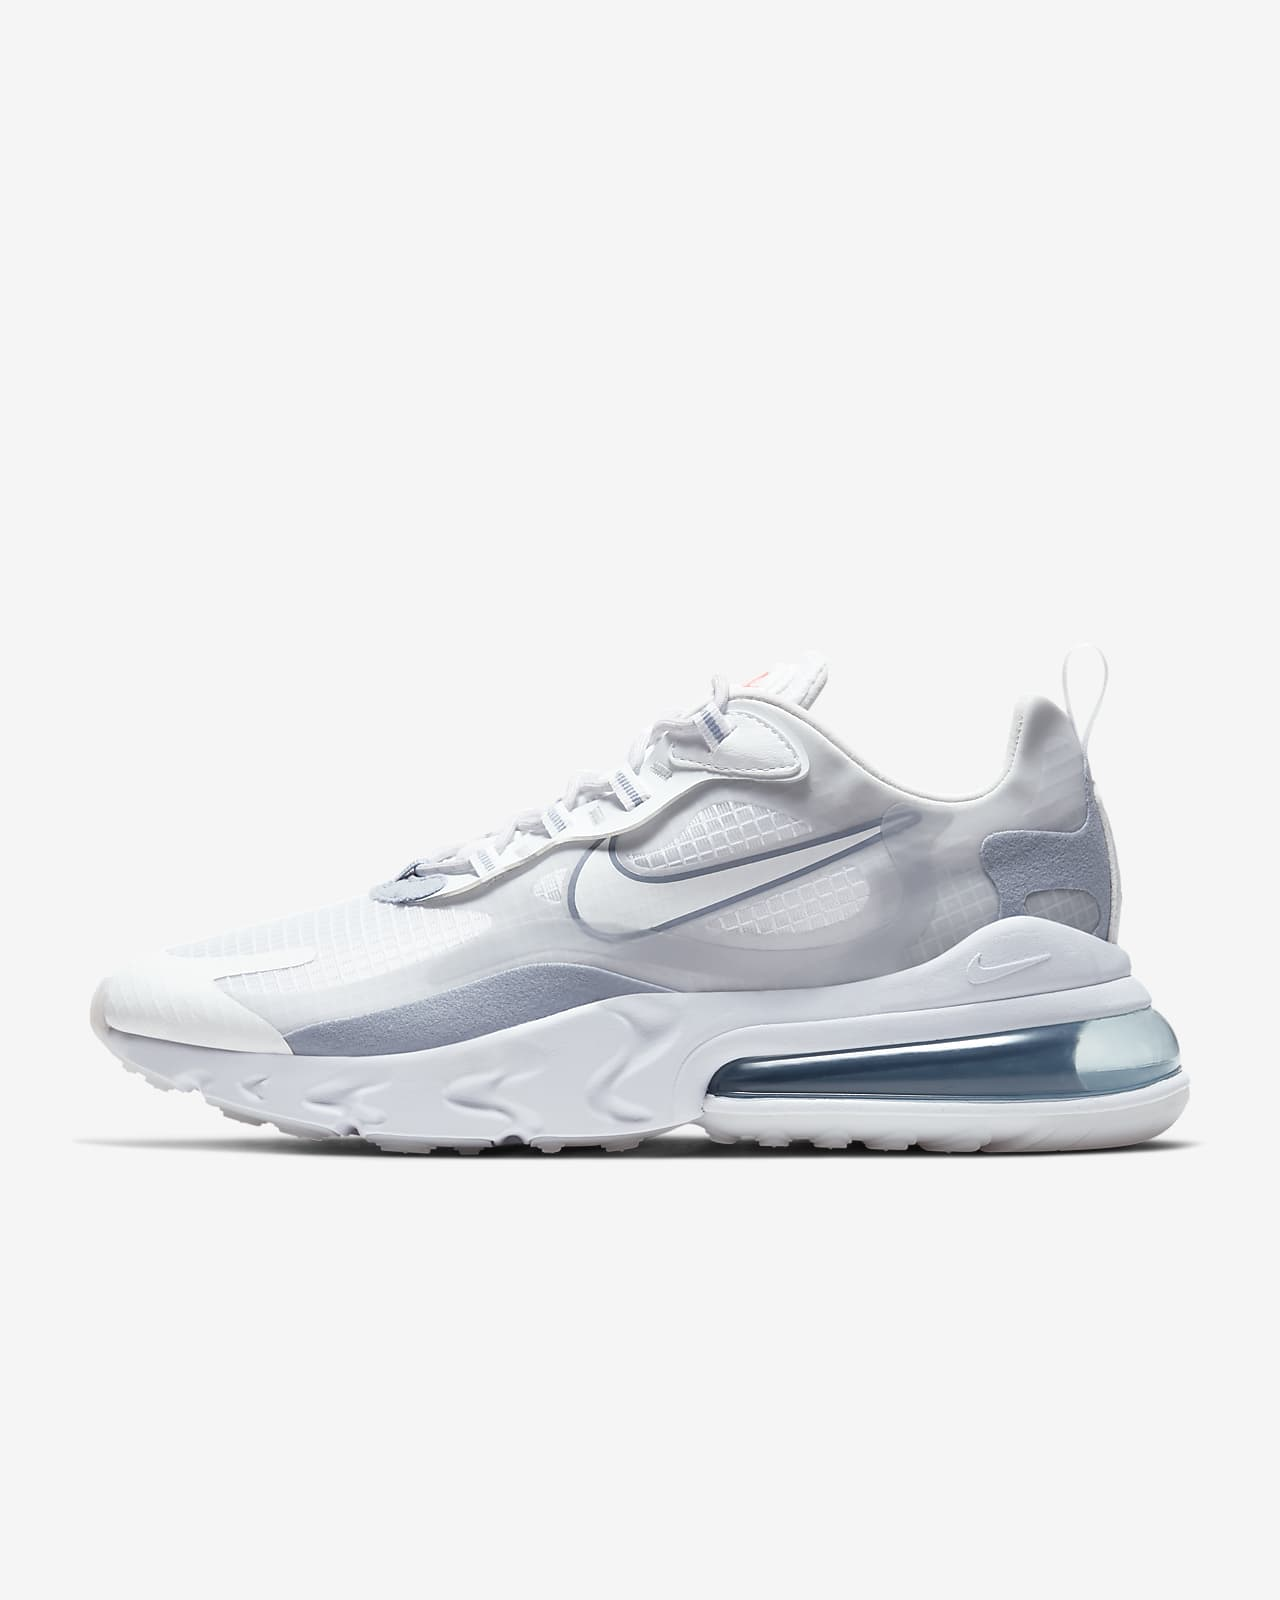 Nike Air Max 270 React SE Men's Shoe